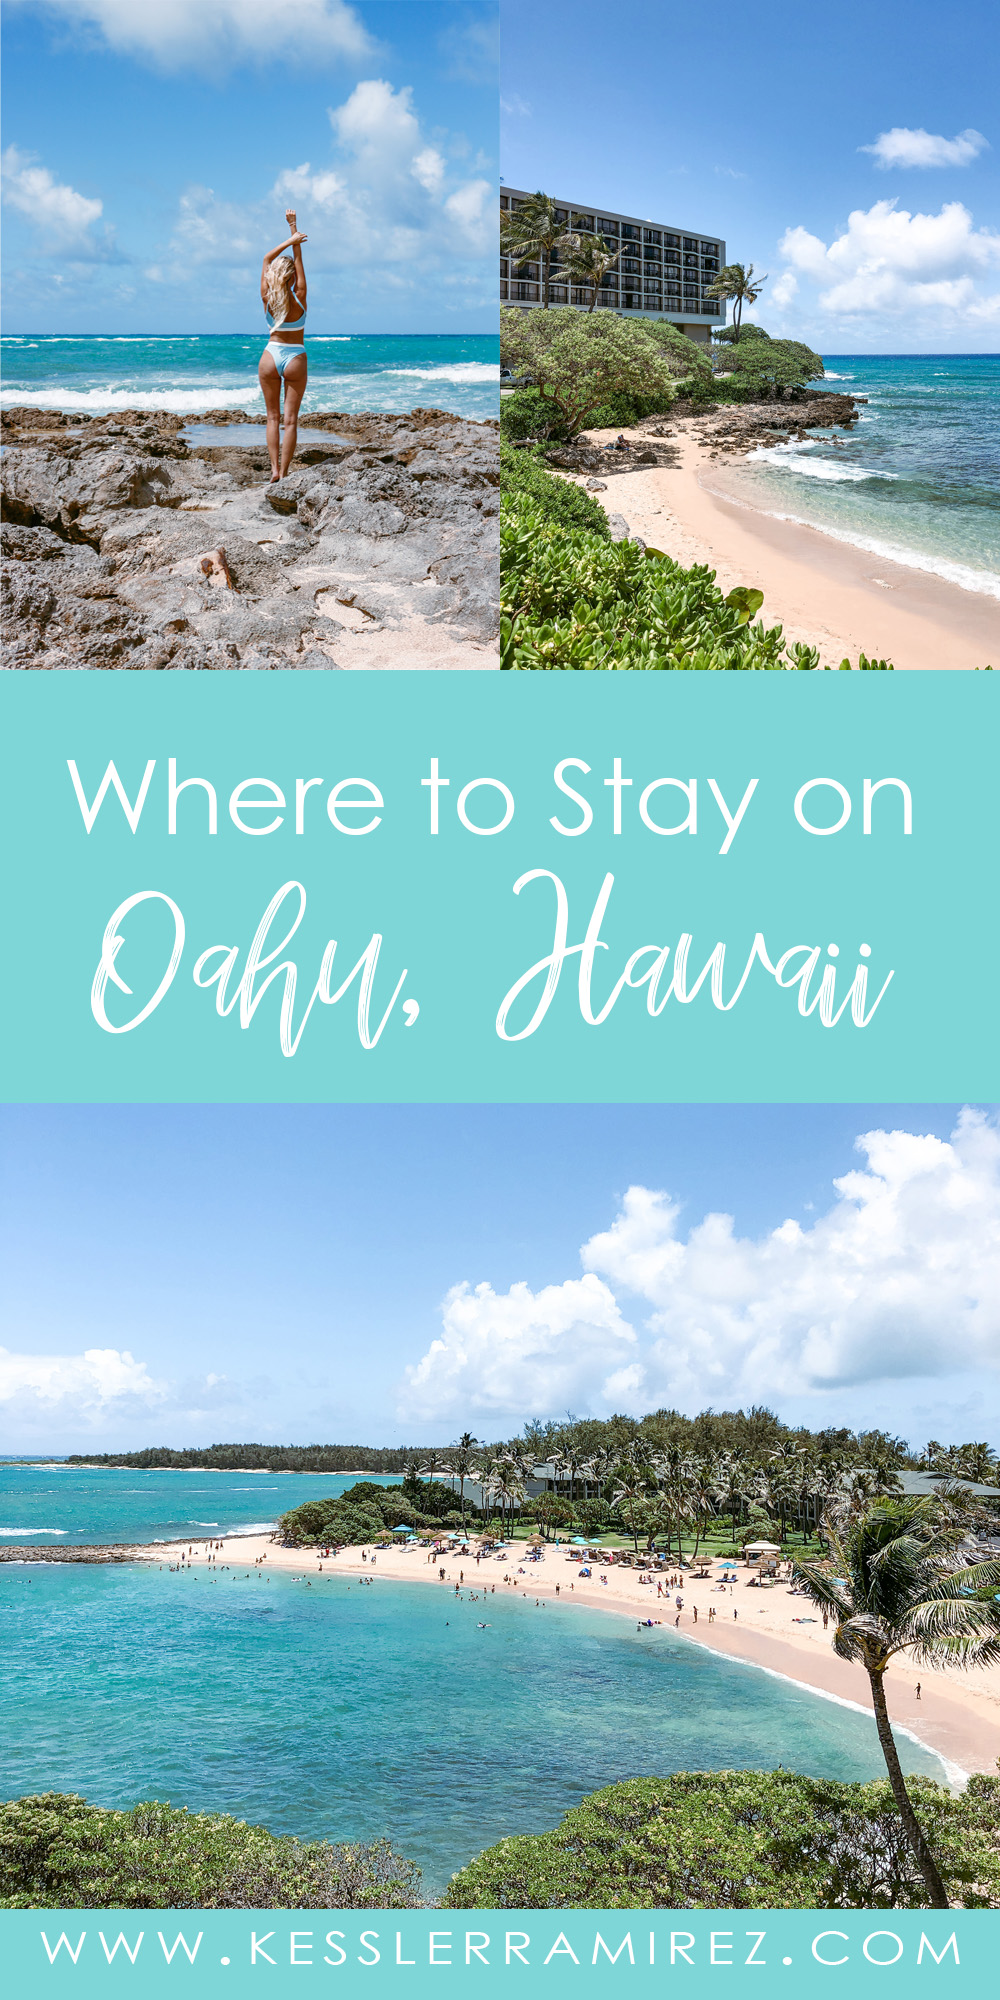 Where to Stay on Oahu, Hawaii by Kessler